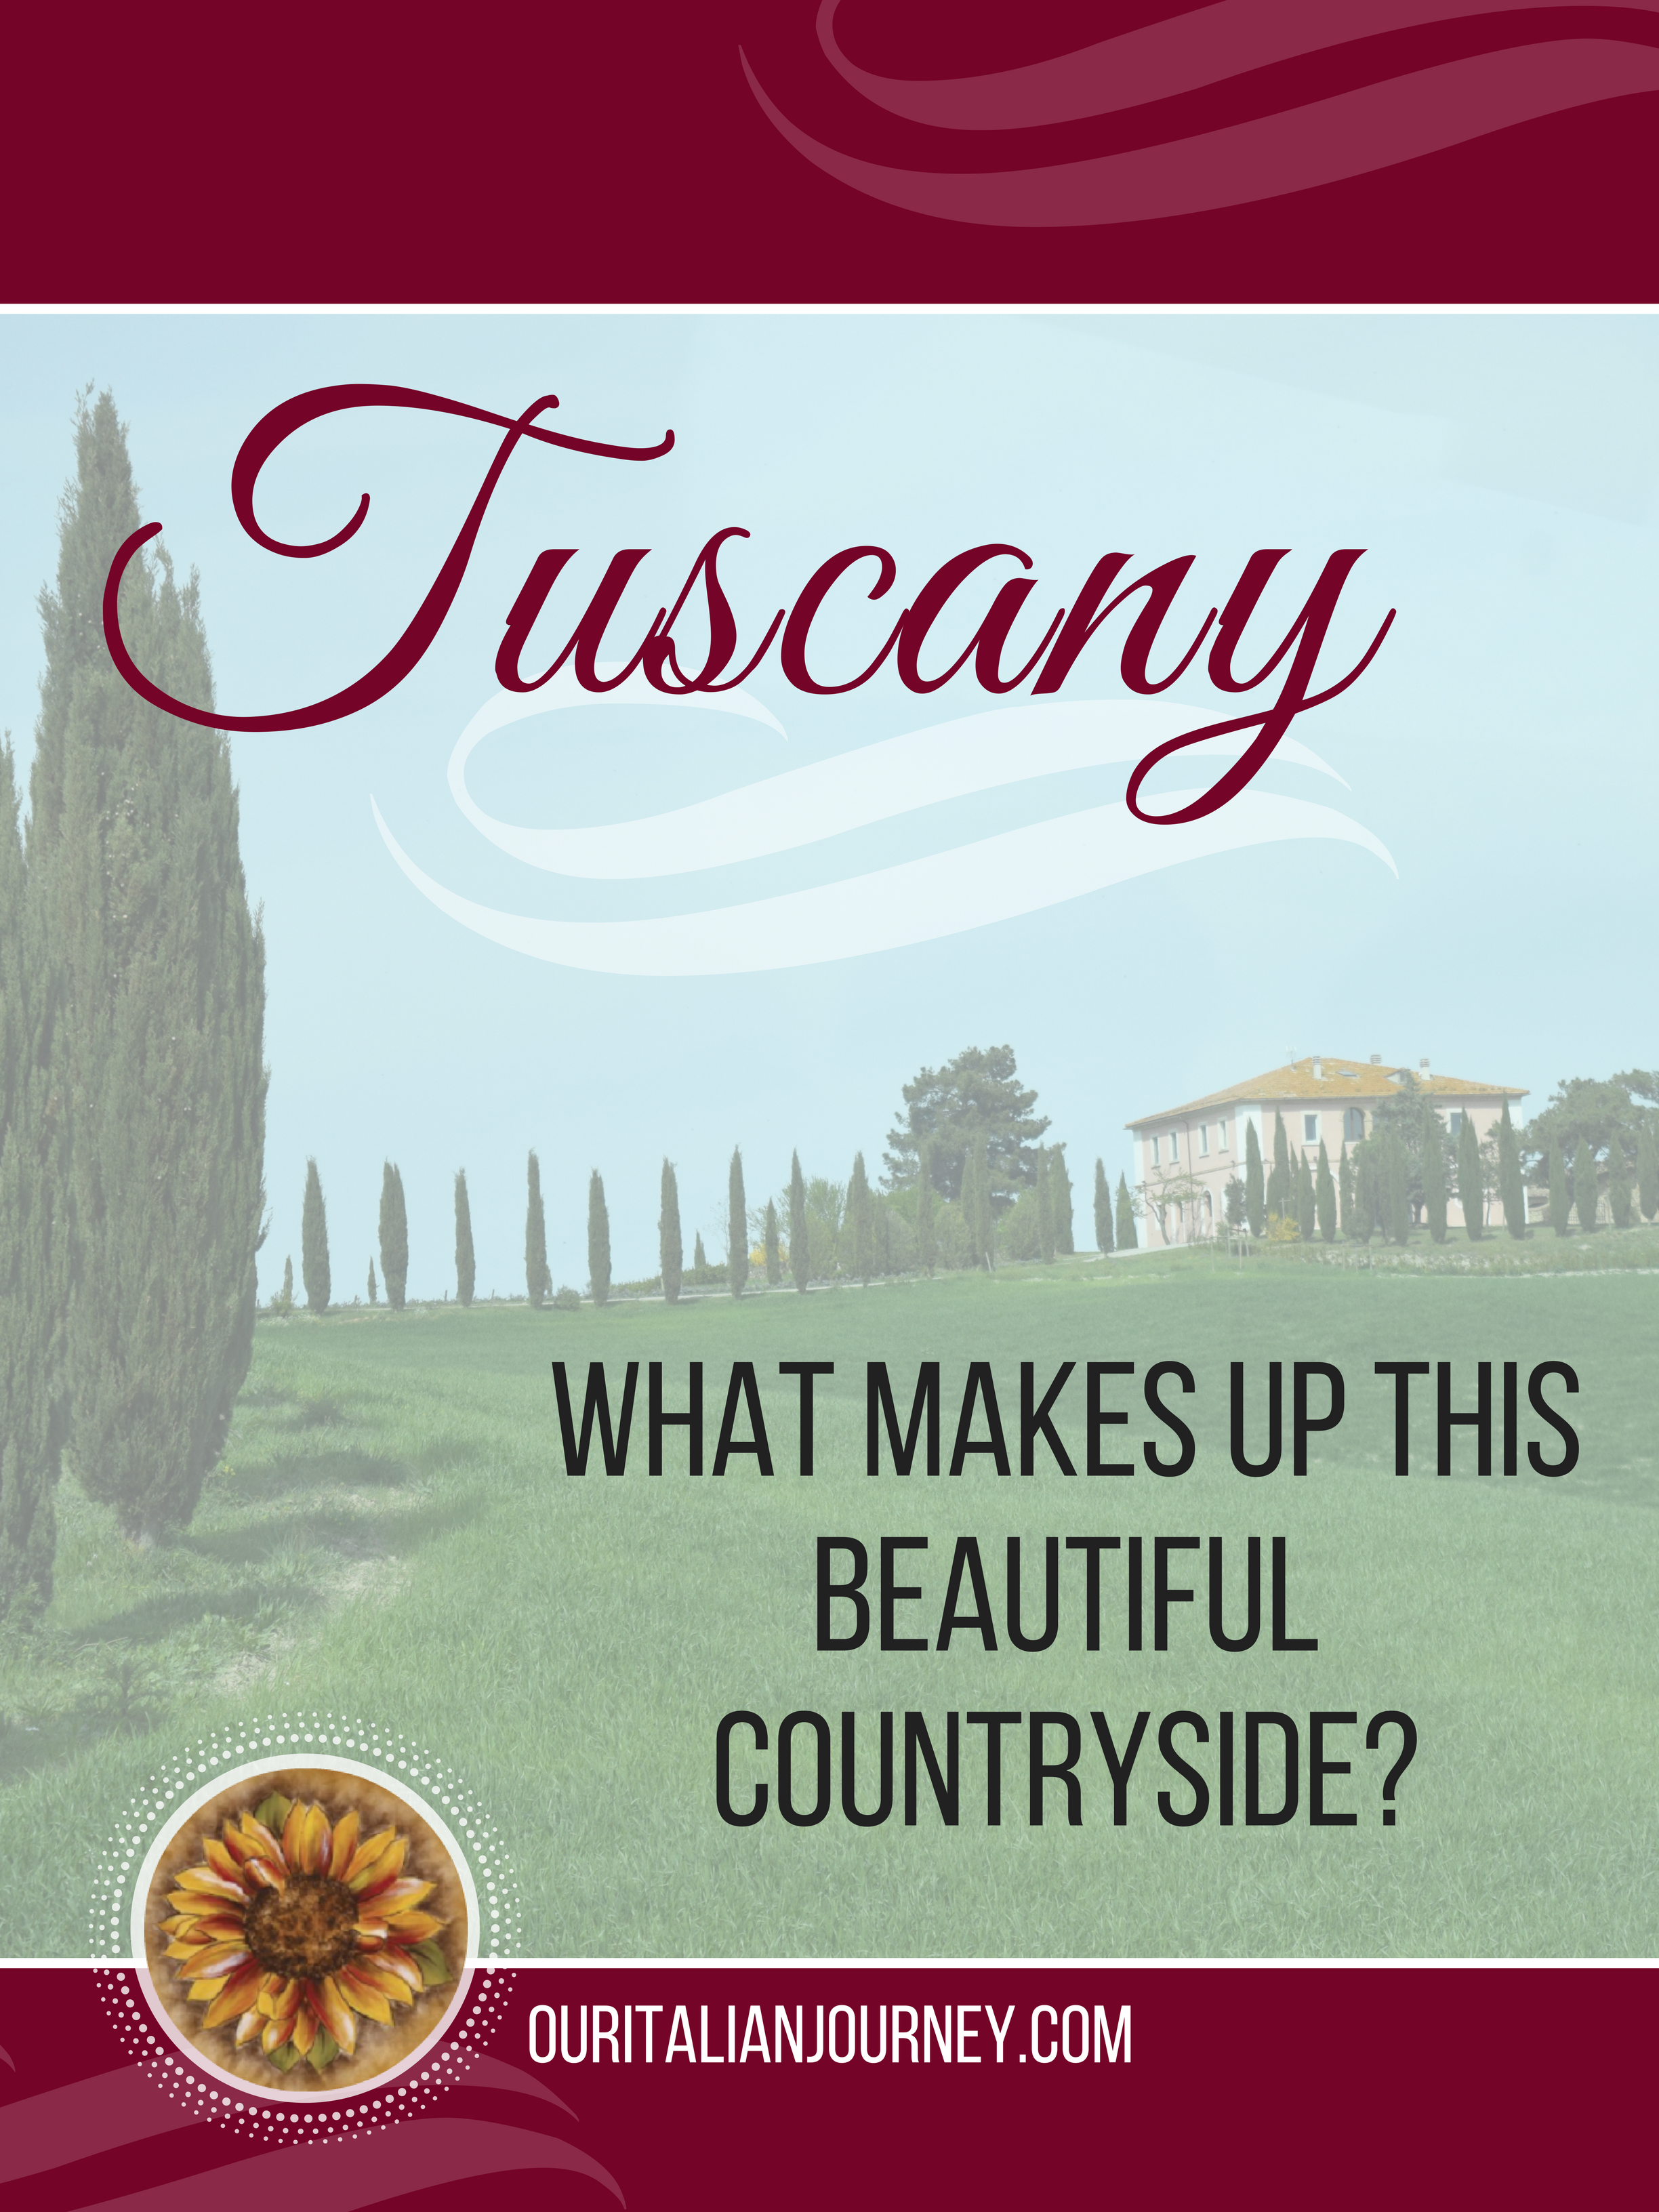 Tuscany What makes up this beautiful countryside?